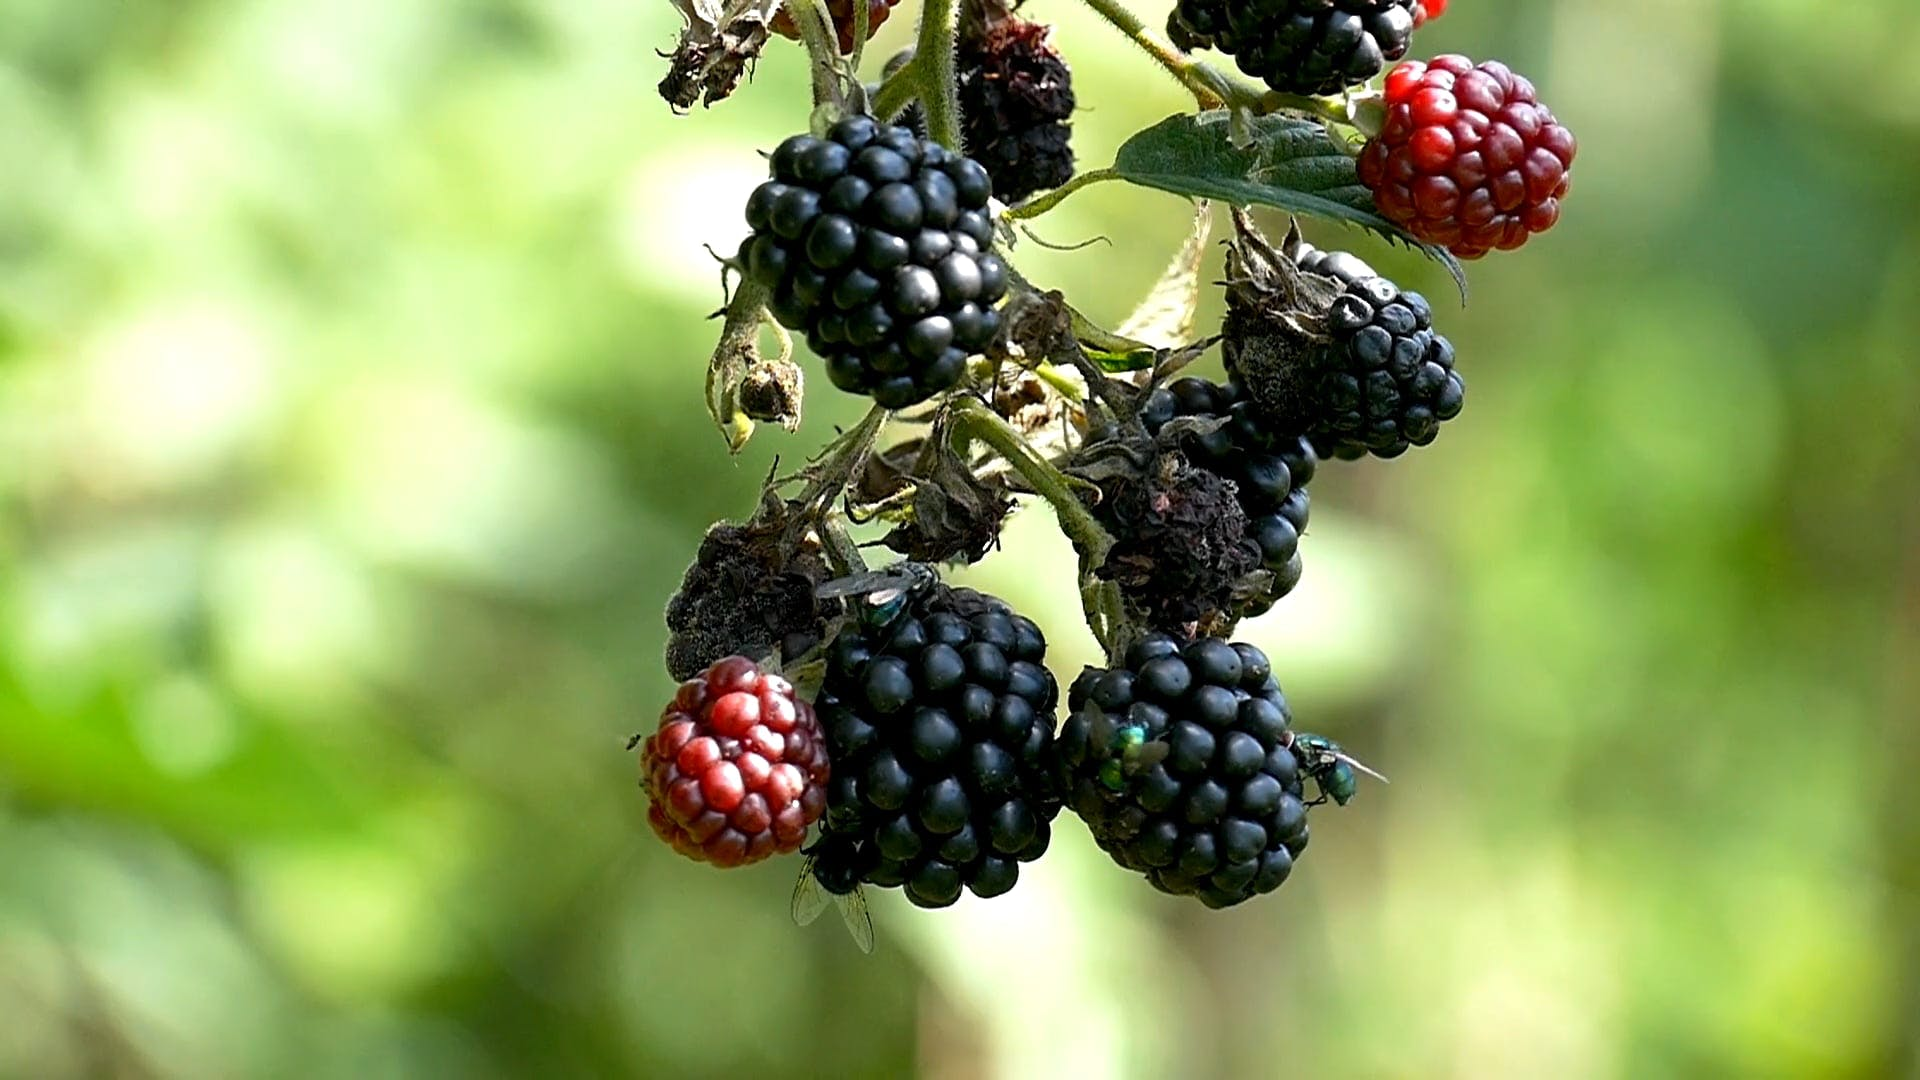 Ripe Blackberries With Flies